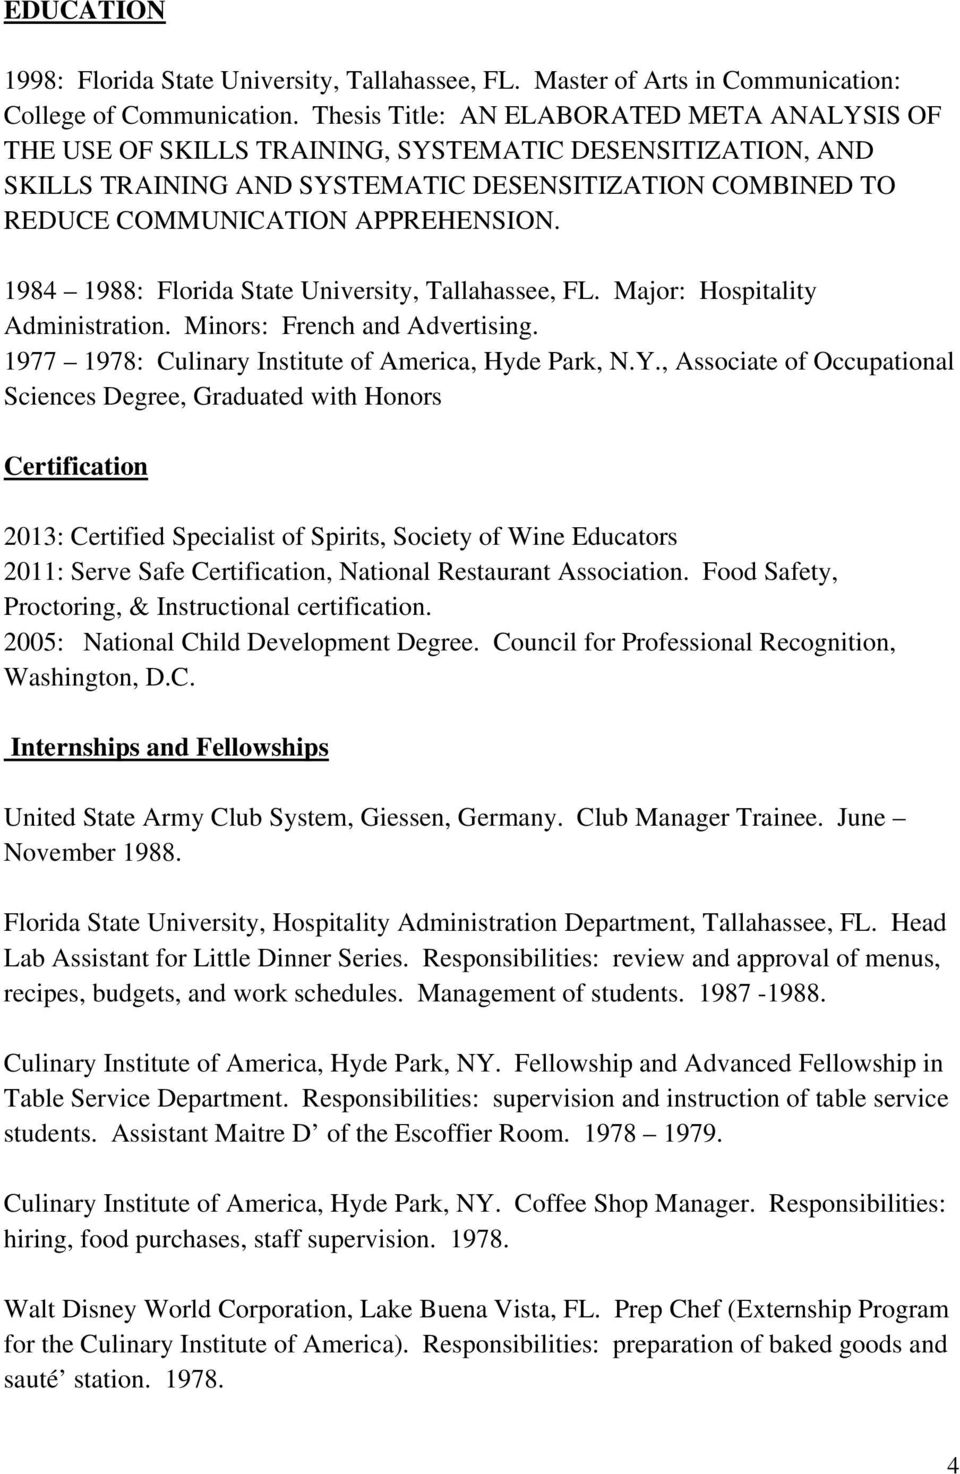 1984 1988: Florida State University, Tallahassee, FL. Major: Hospitality Administration. Minors: French and Advertising. 1977 1978: Culinary Institute of America, Hyde Park, N.Y.